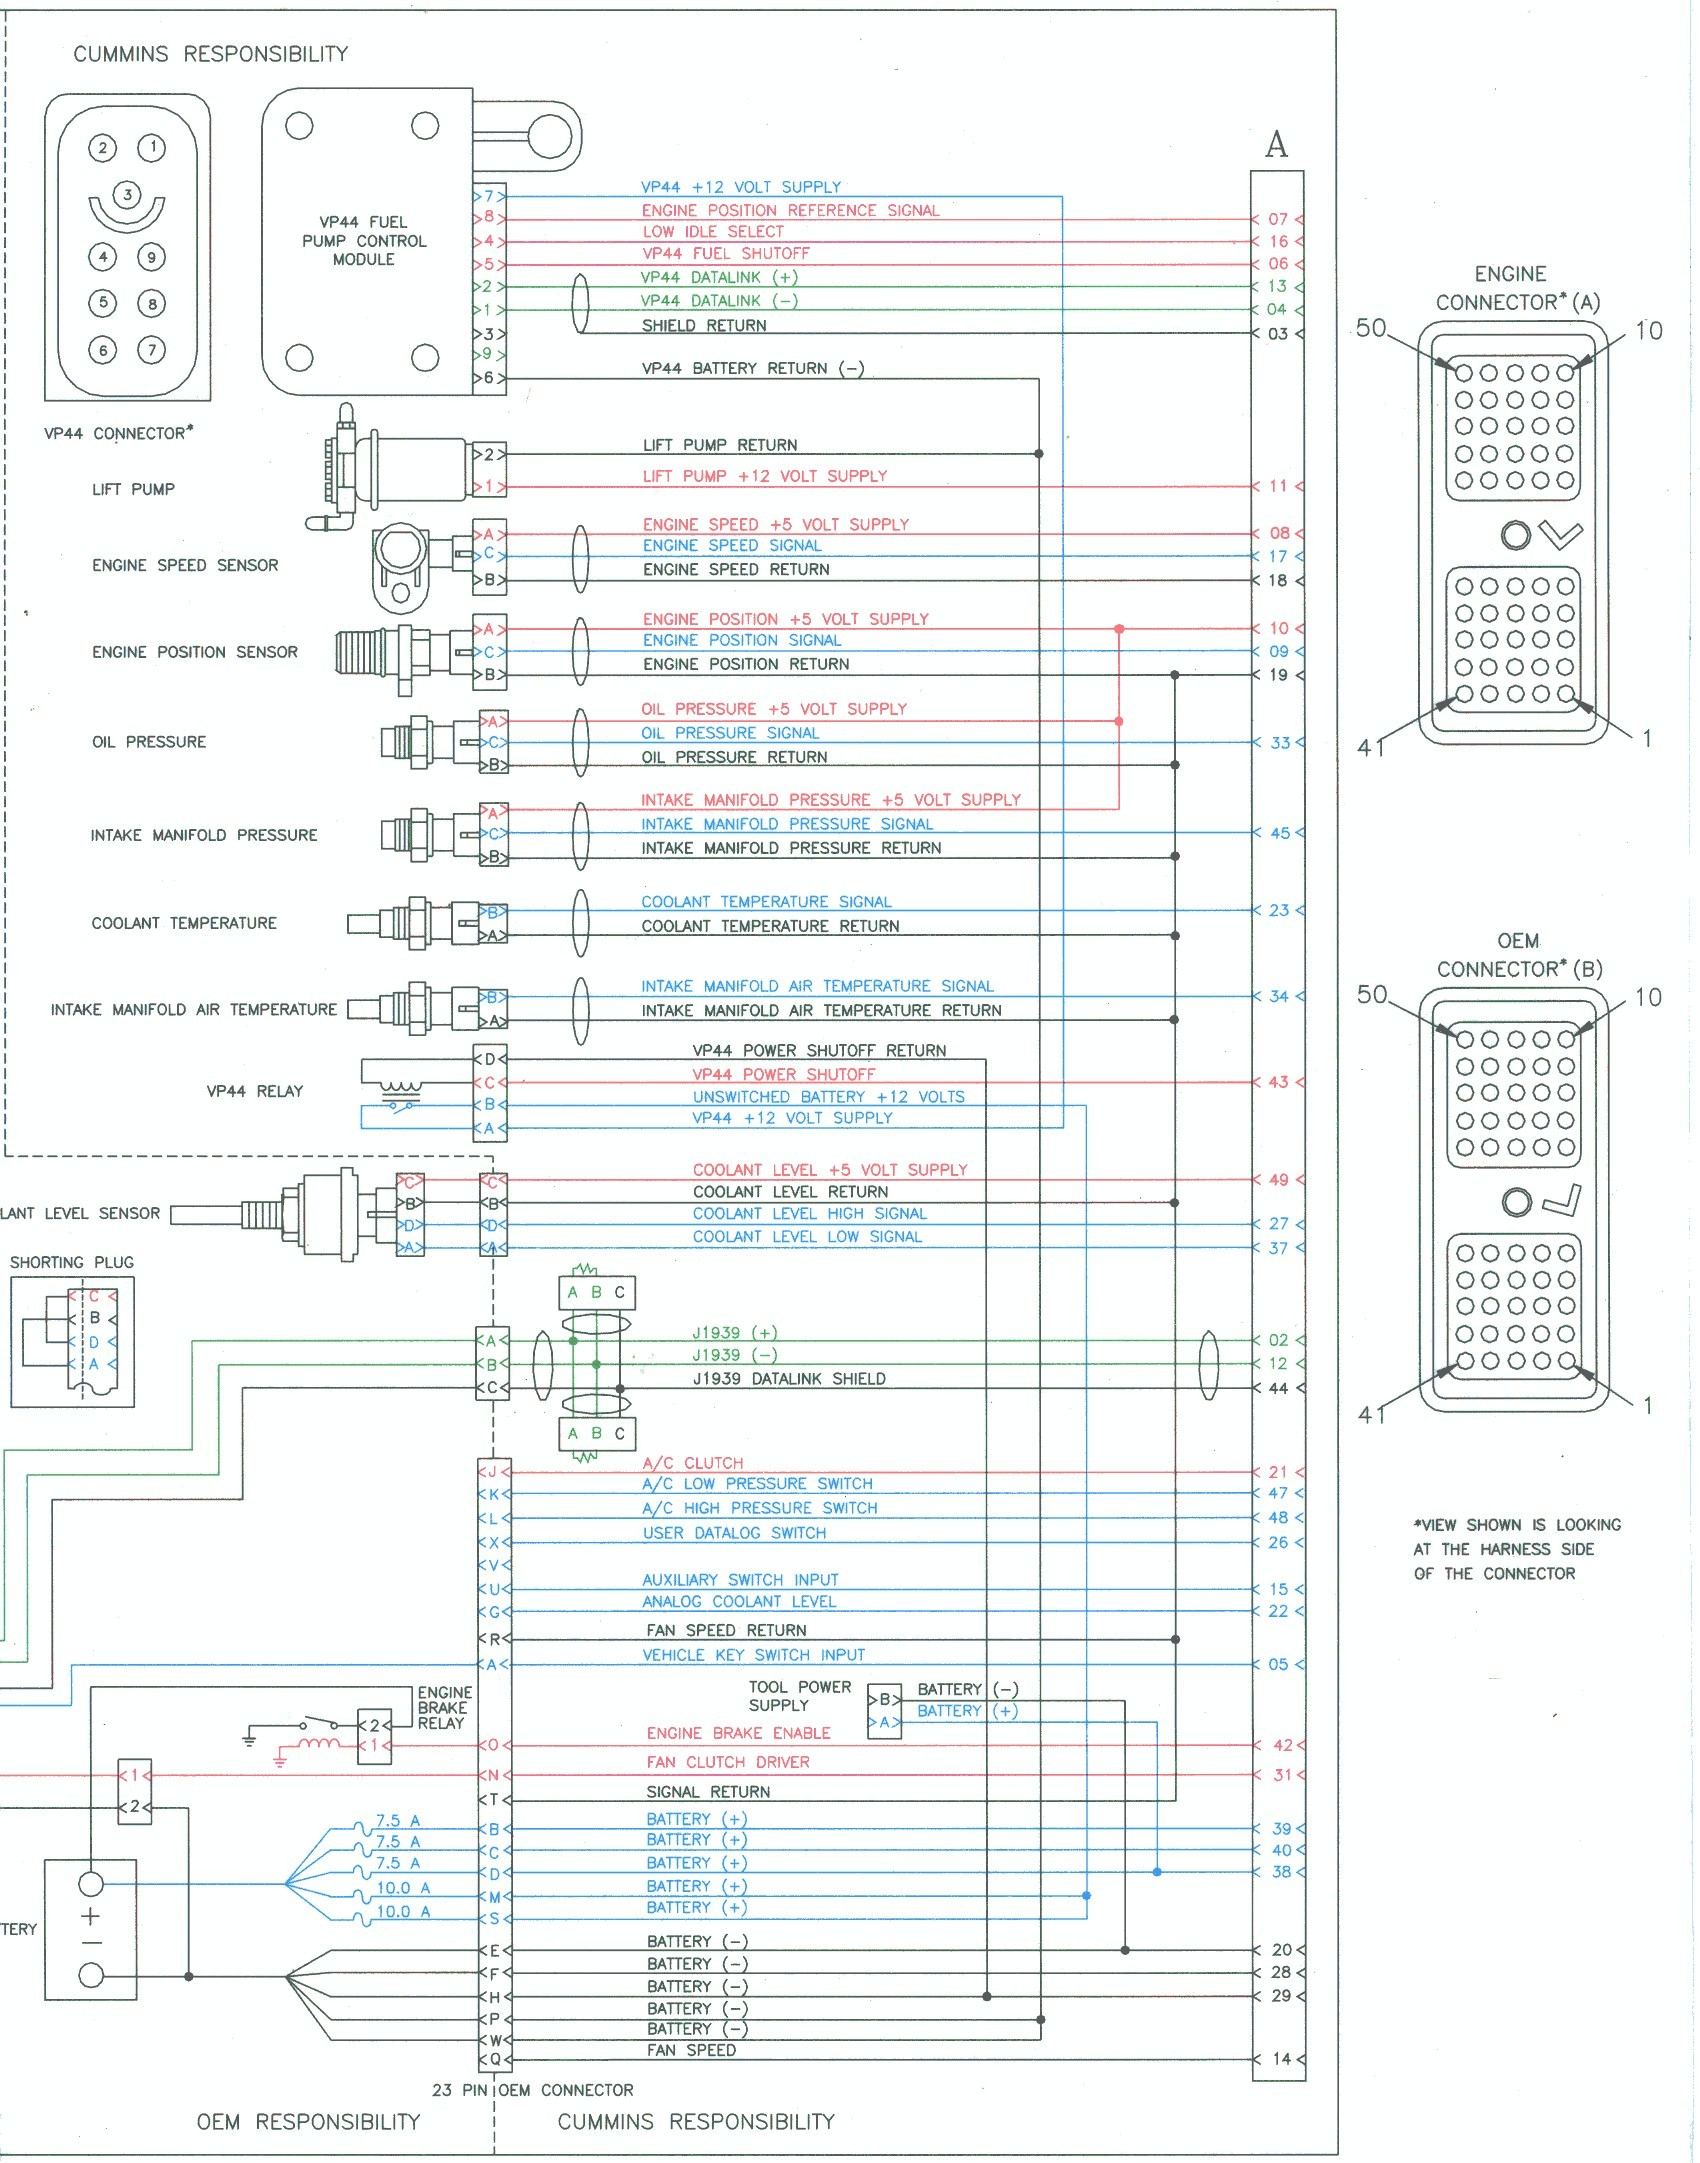 2003 dodge ram trailer wiring diagram wiring data 2003 dodge ram 1500 wiring diagram awesome wiring diagram image 2005 dodge ram trailer wiring diagram 2003 dodge ram trailer wiring diagram asfbconference2016 Images